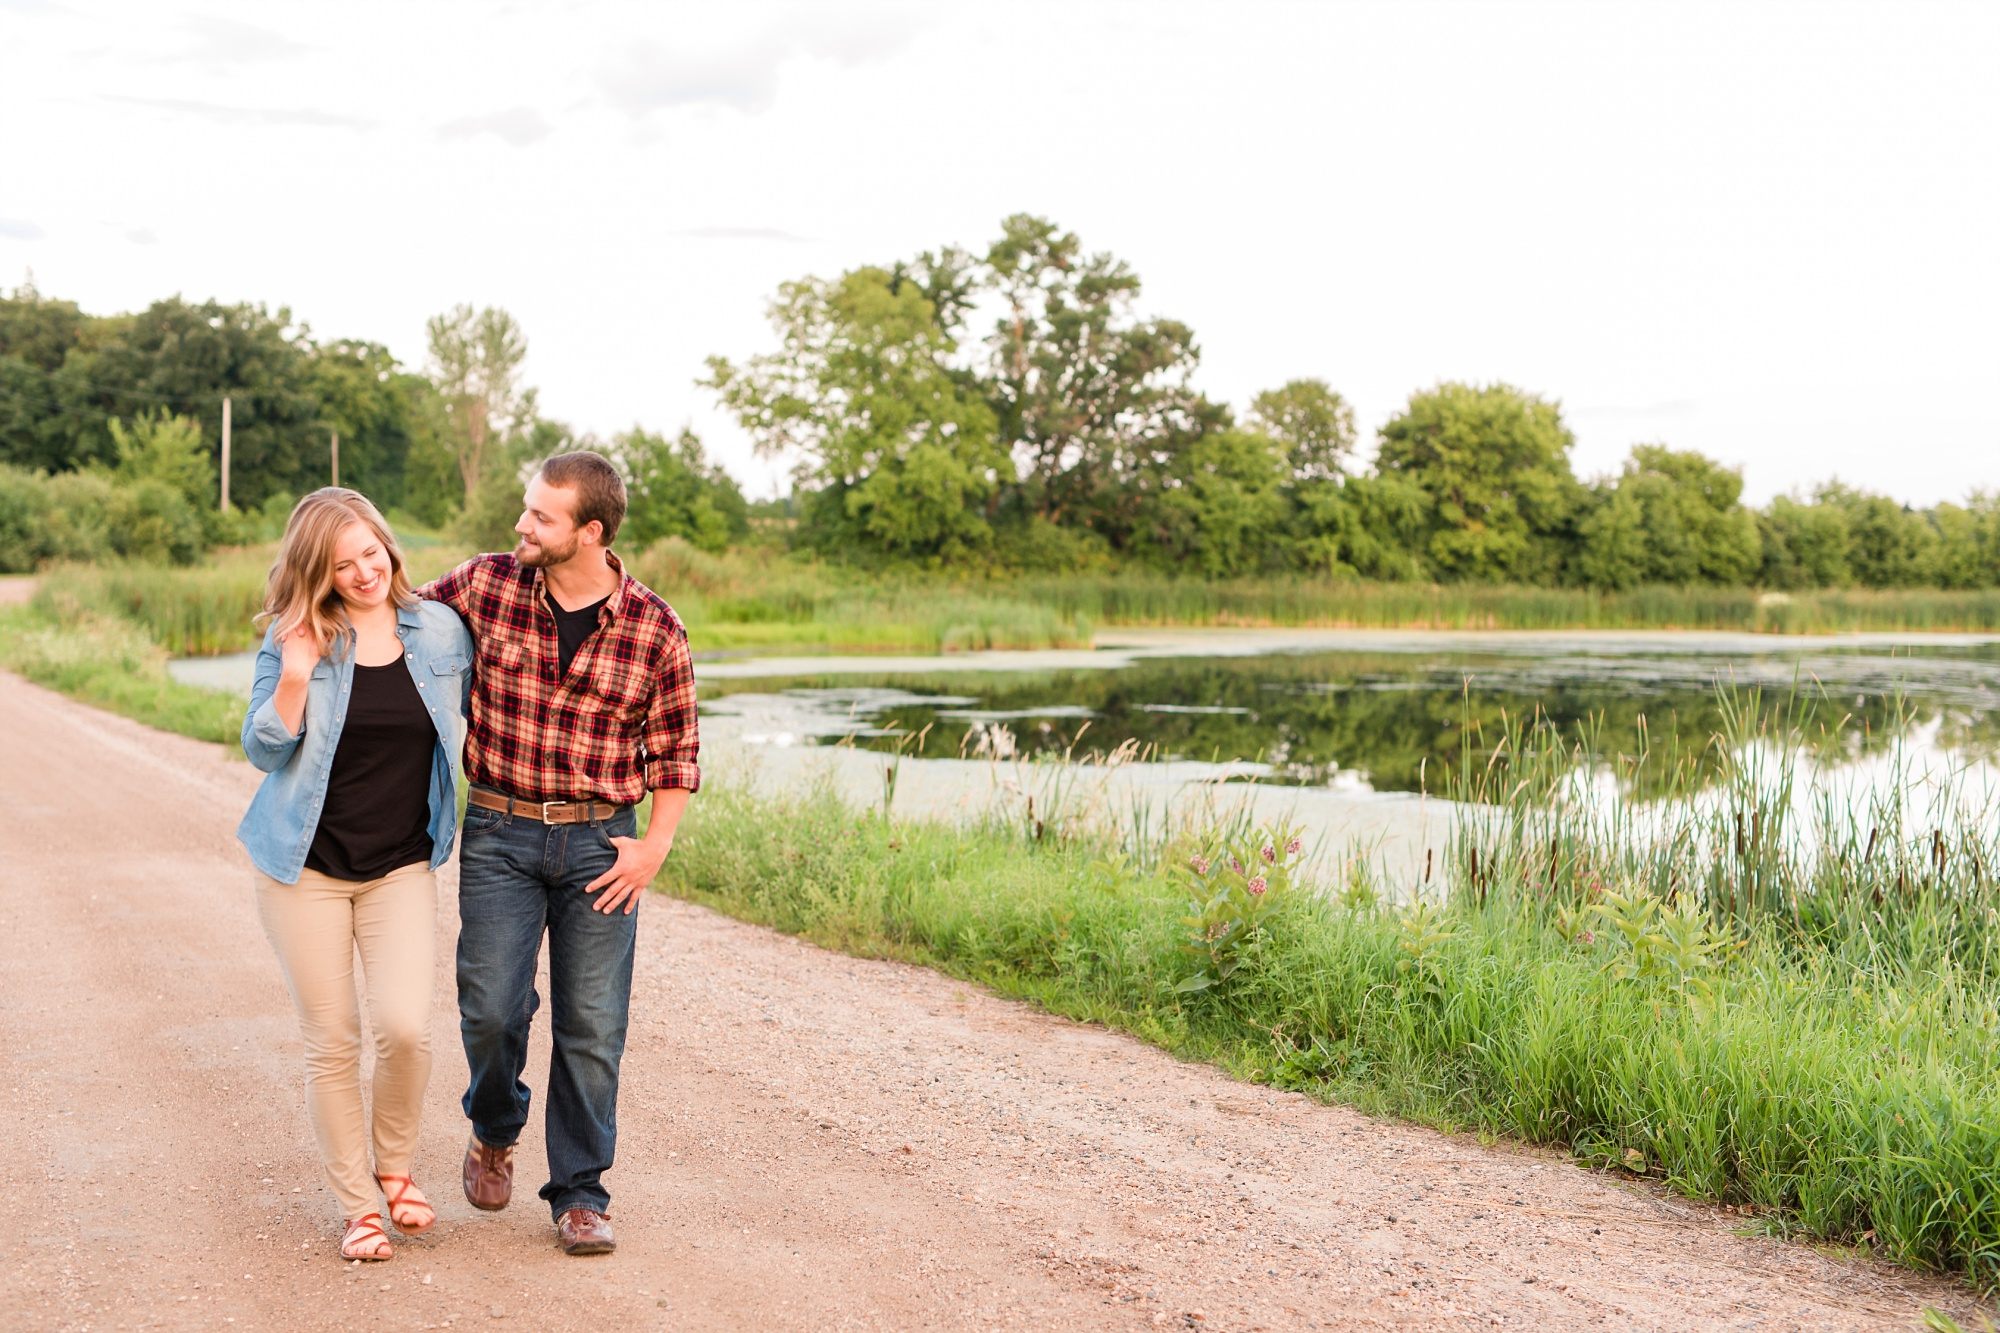 AmberLangerudPhotography_Countryside Engagement Session in Minnesota_3138.jpg